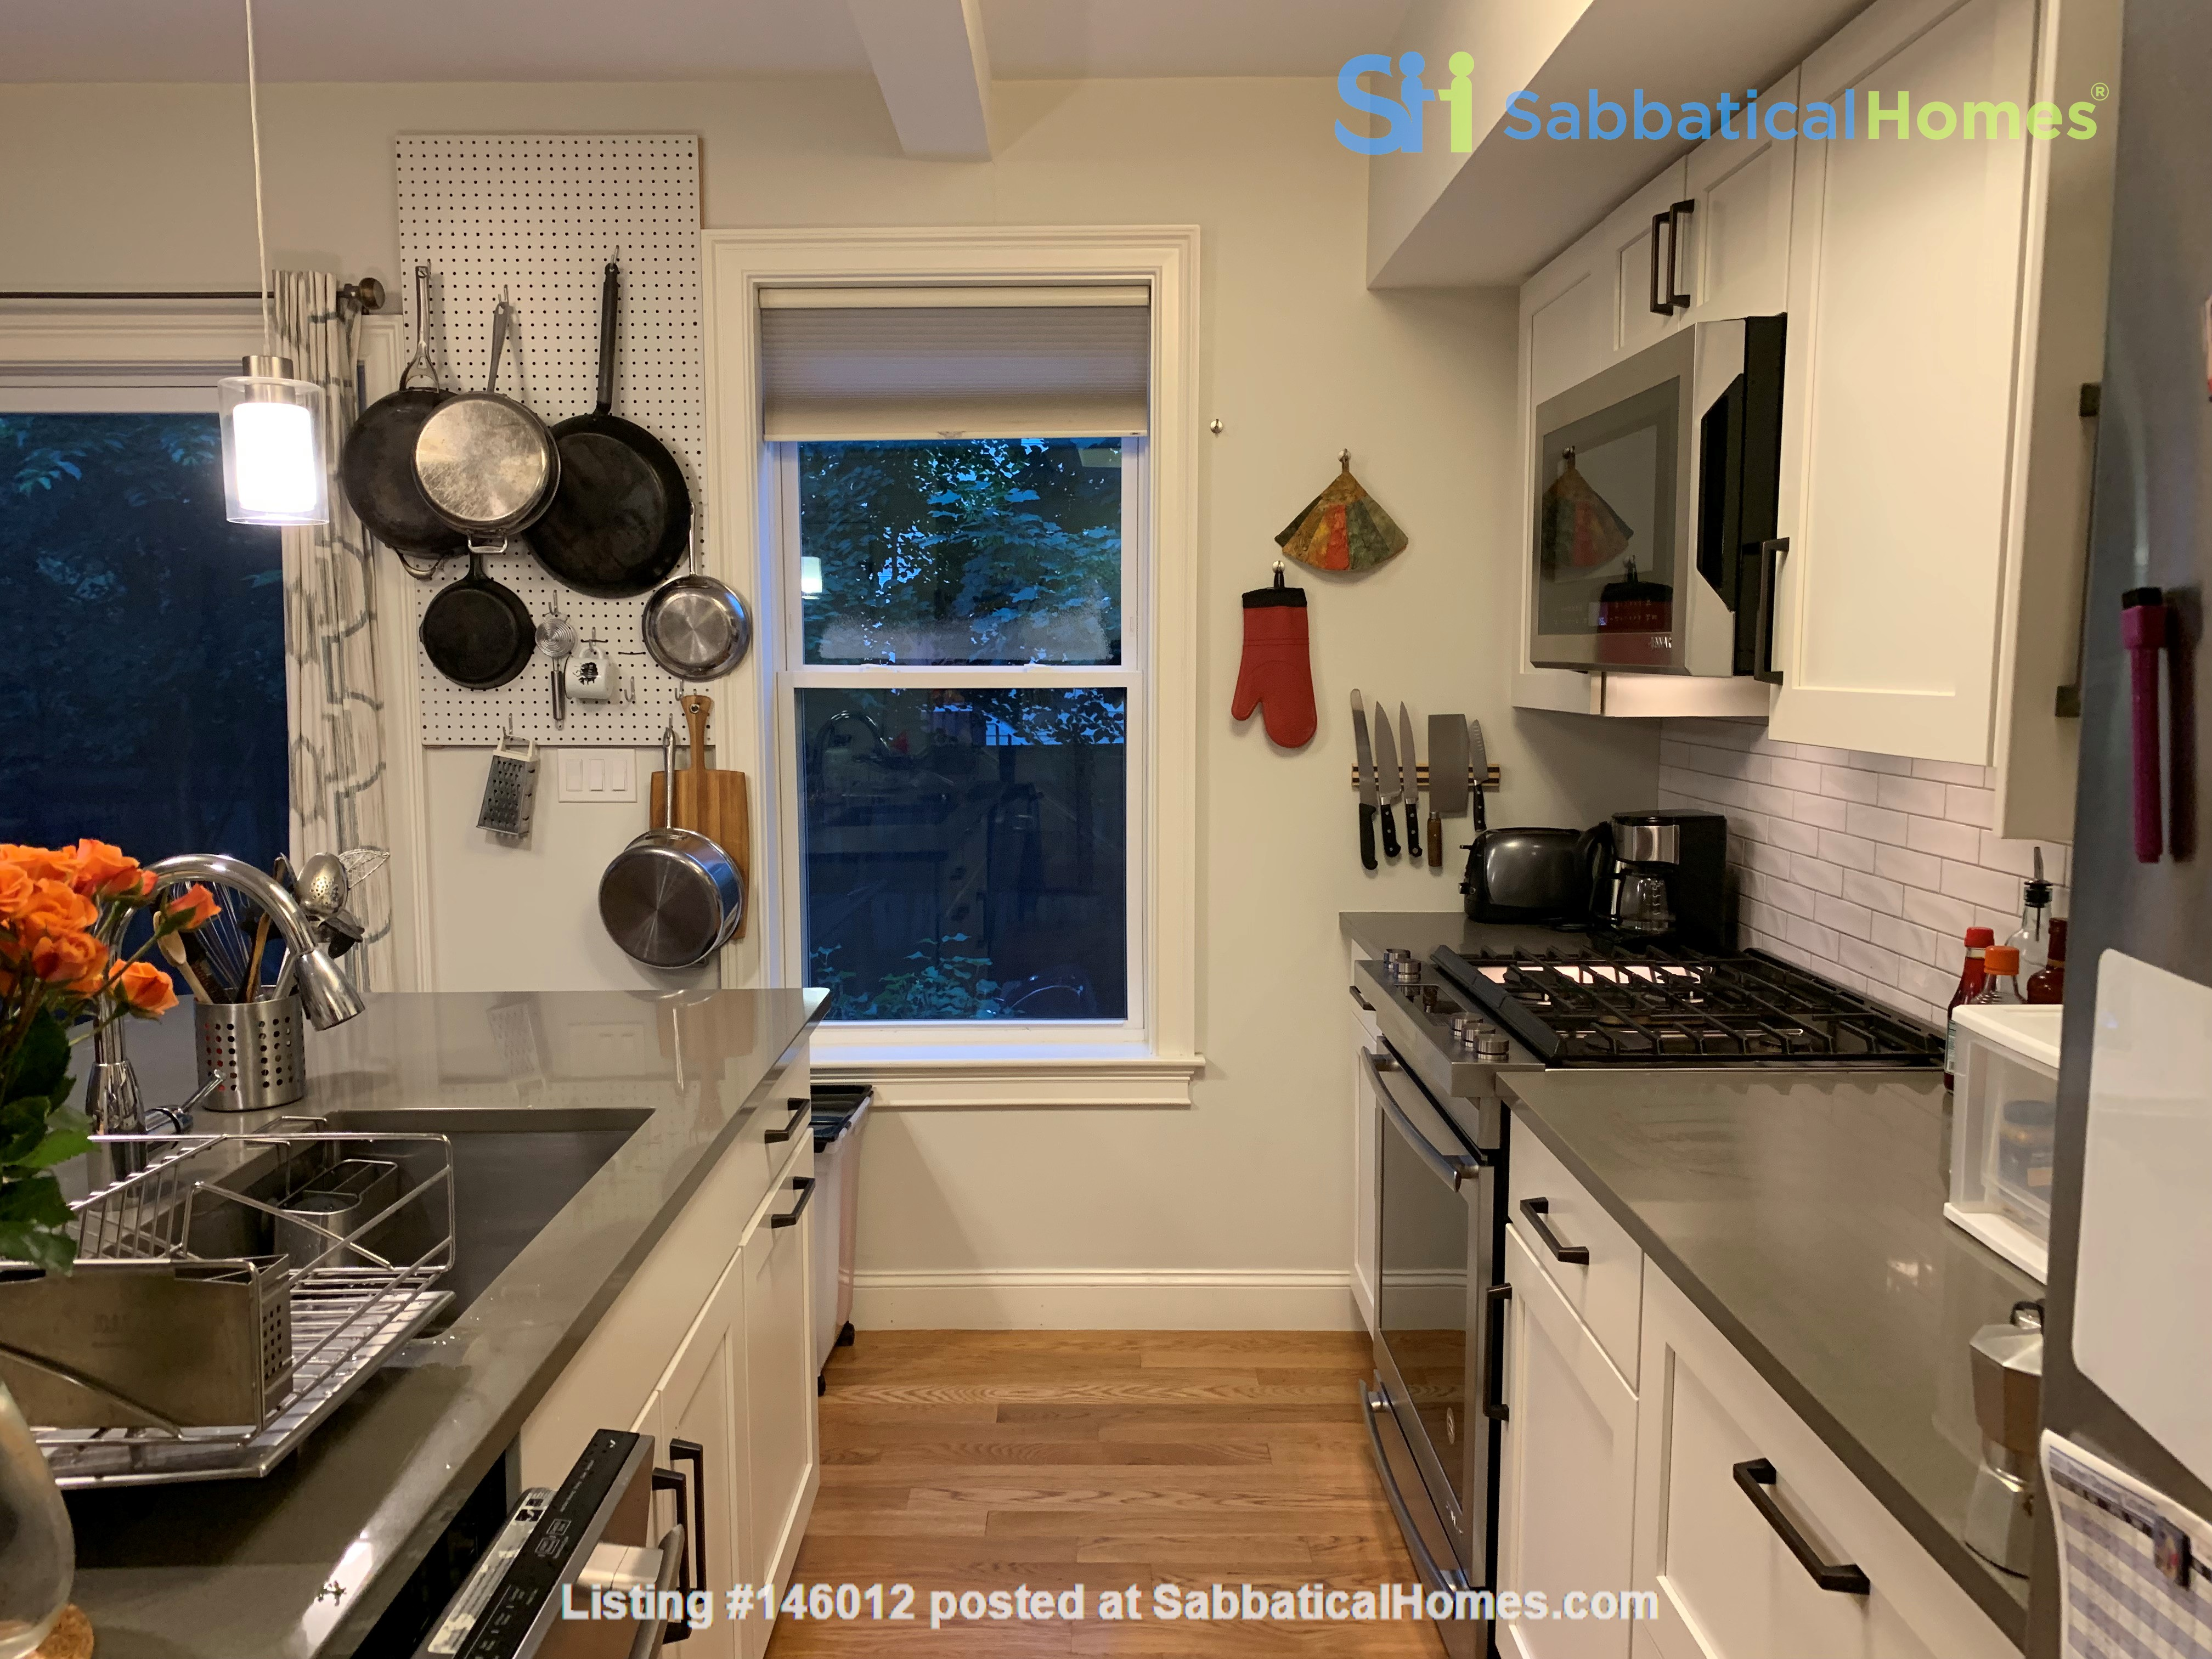 Lovely furnished 2-bedroom with private yard between Harvard and MIT Home Rental in Cambridge 3